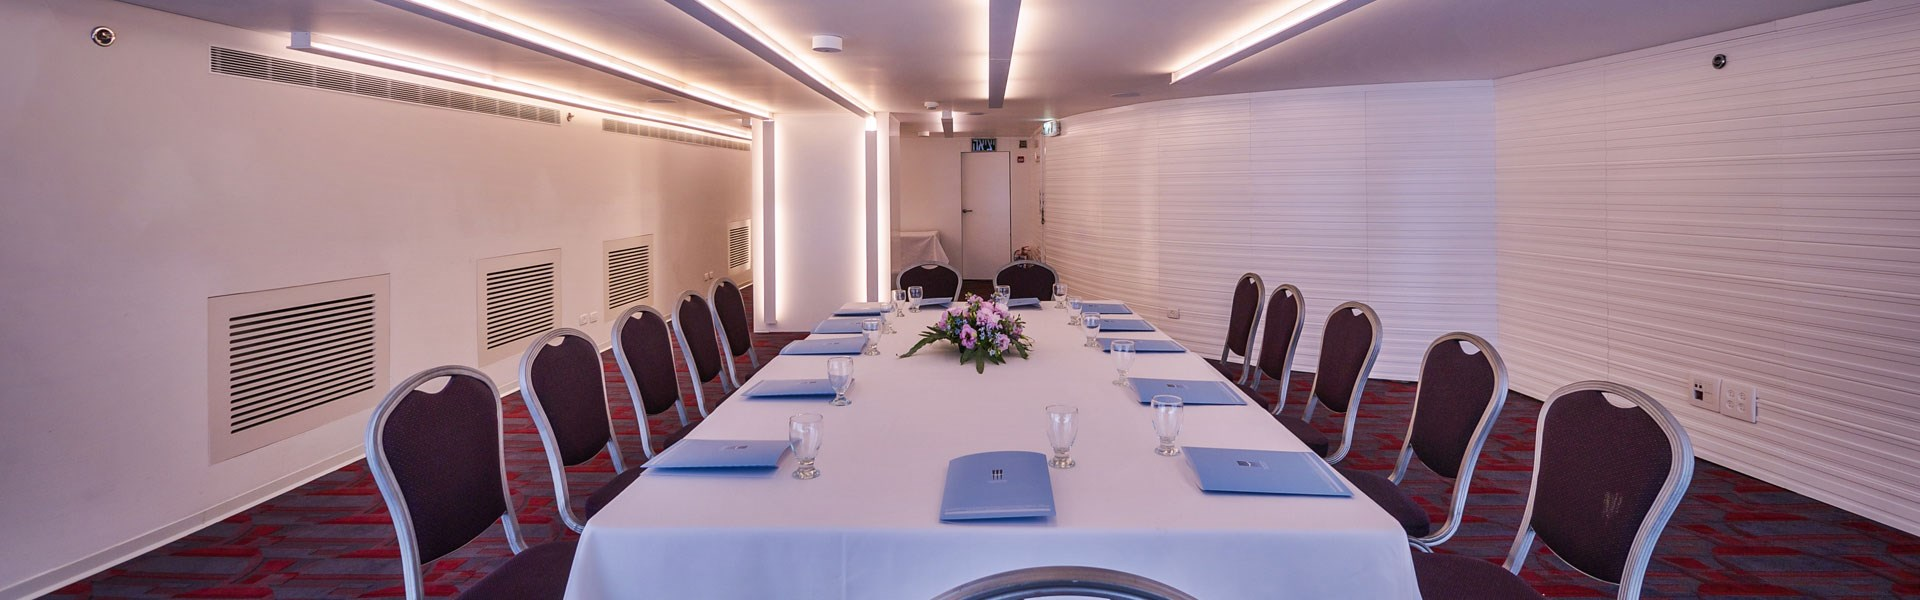 Conference rooms in Metropolitan Hotel